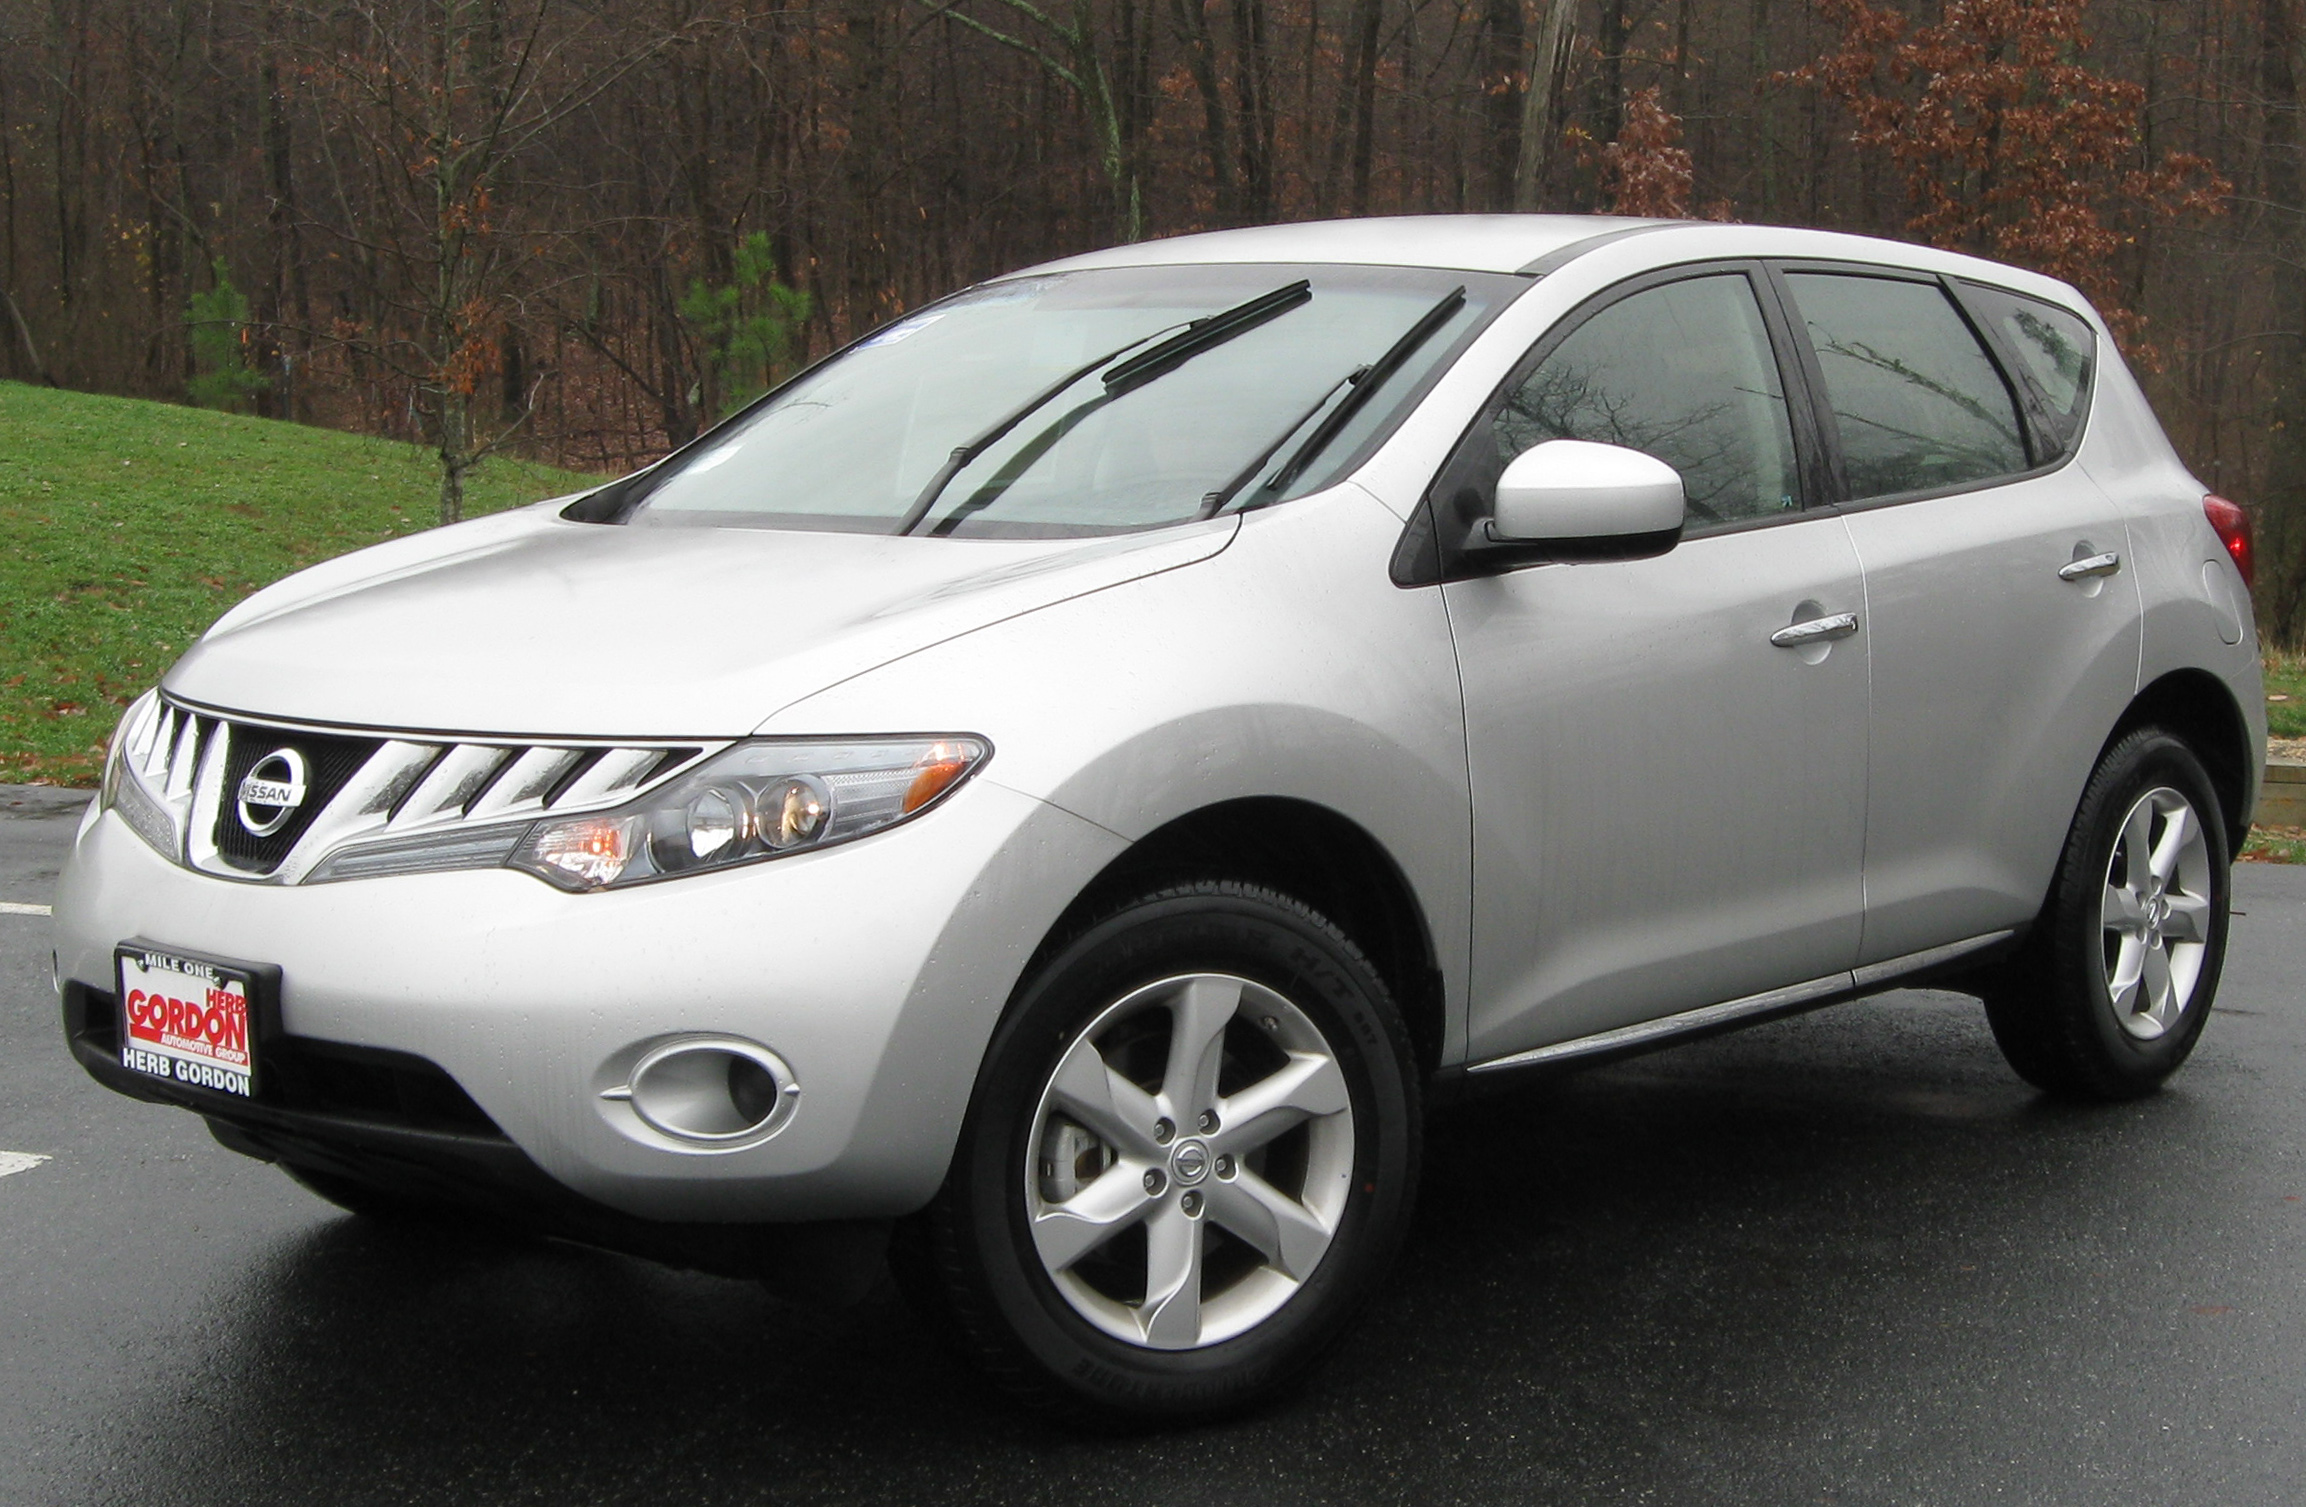 Pictures of nissan murano #1